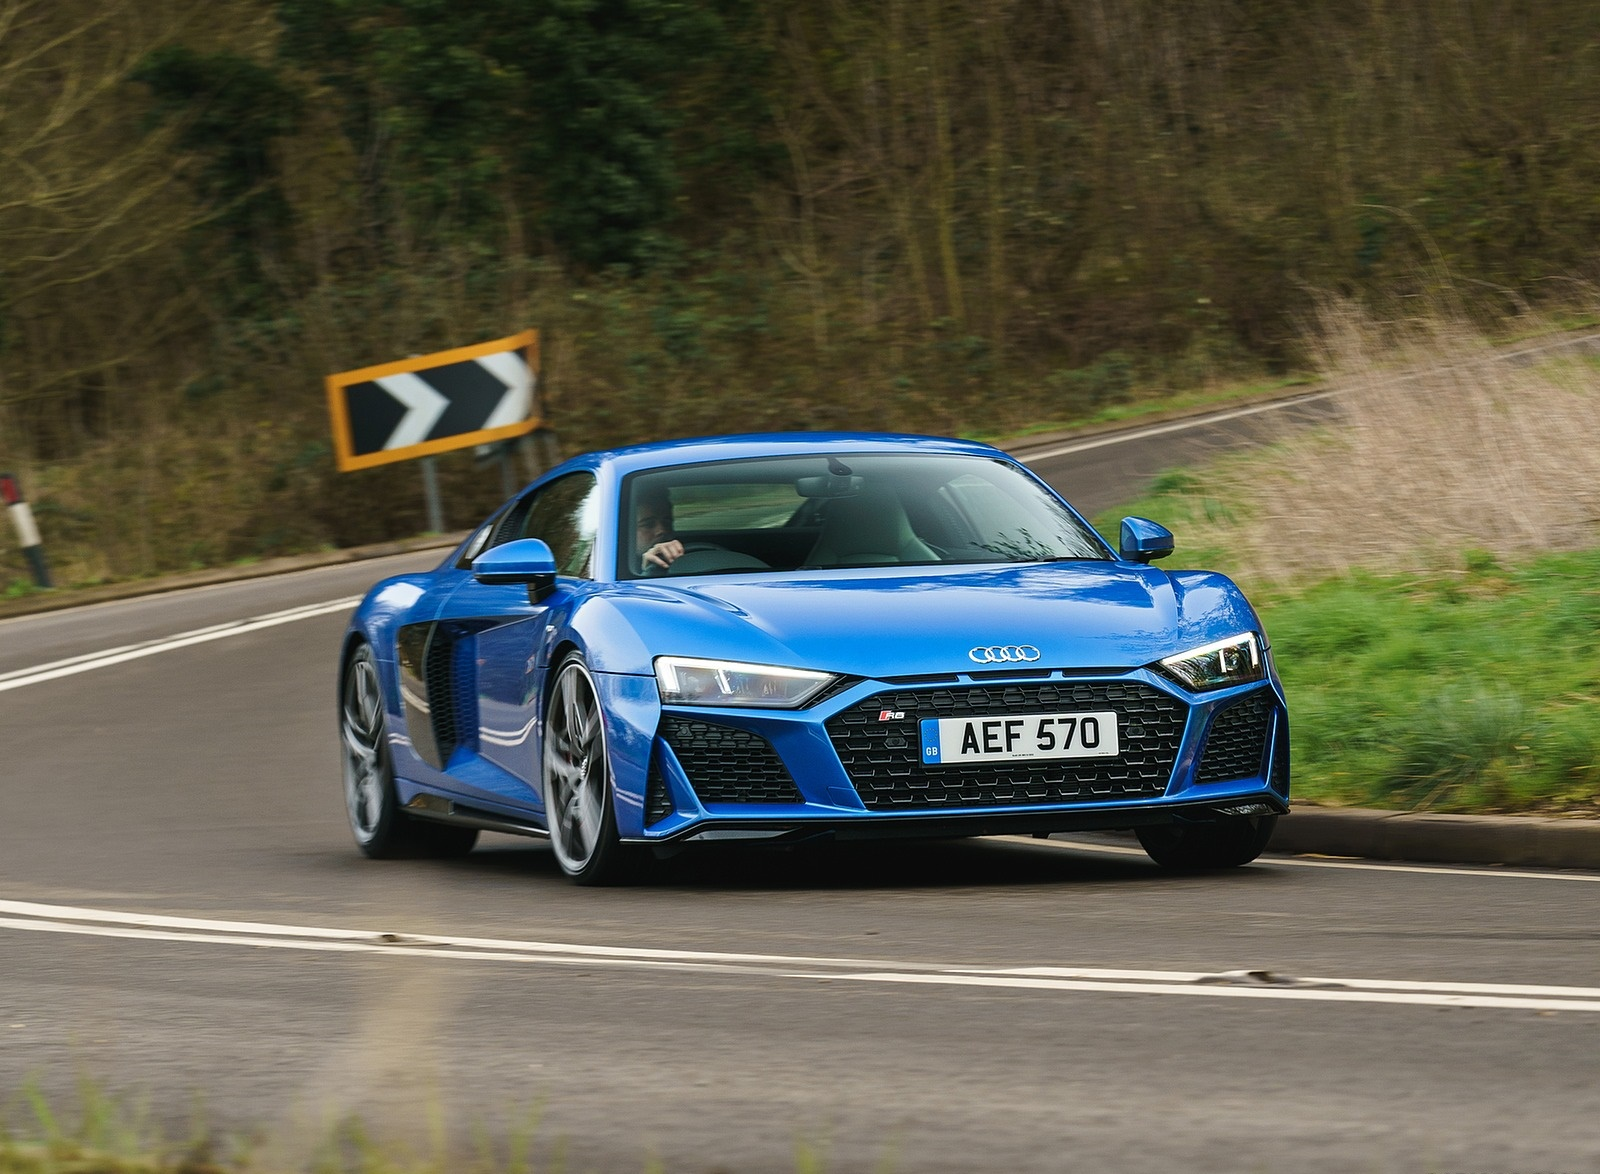 2019 Audi R8 V10 Coupe quattro (UK-Spec) Front Wallpaper (5)